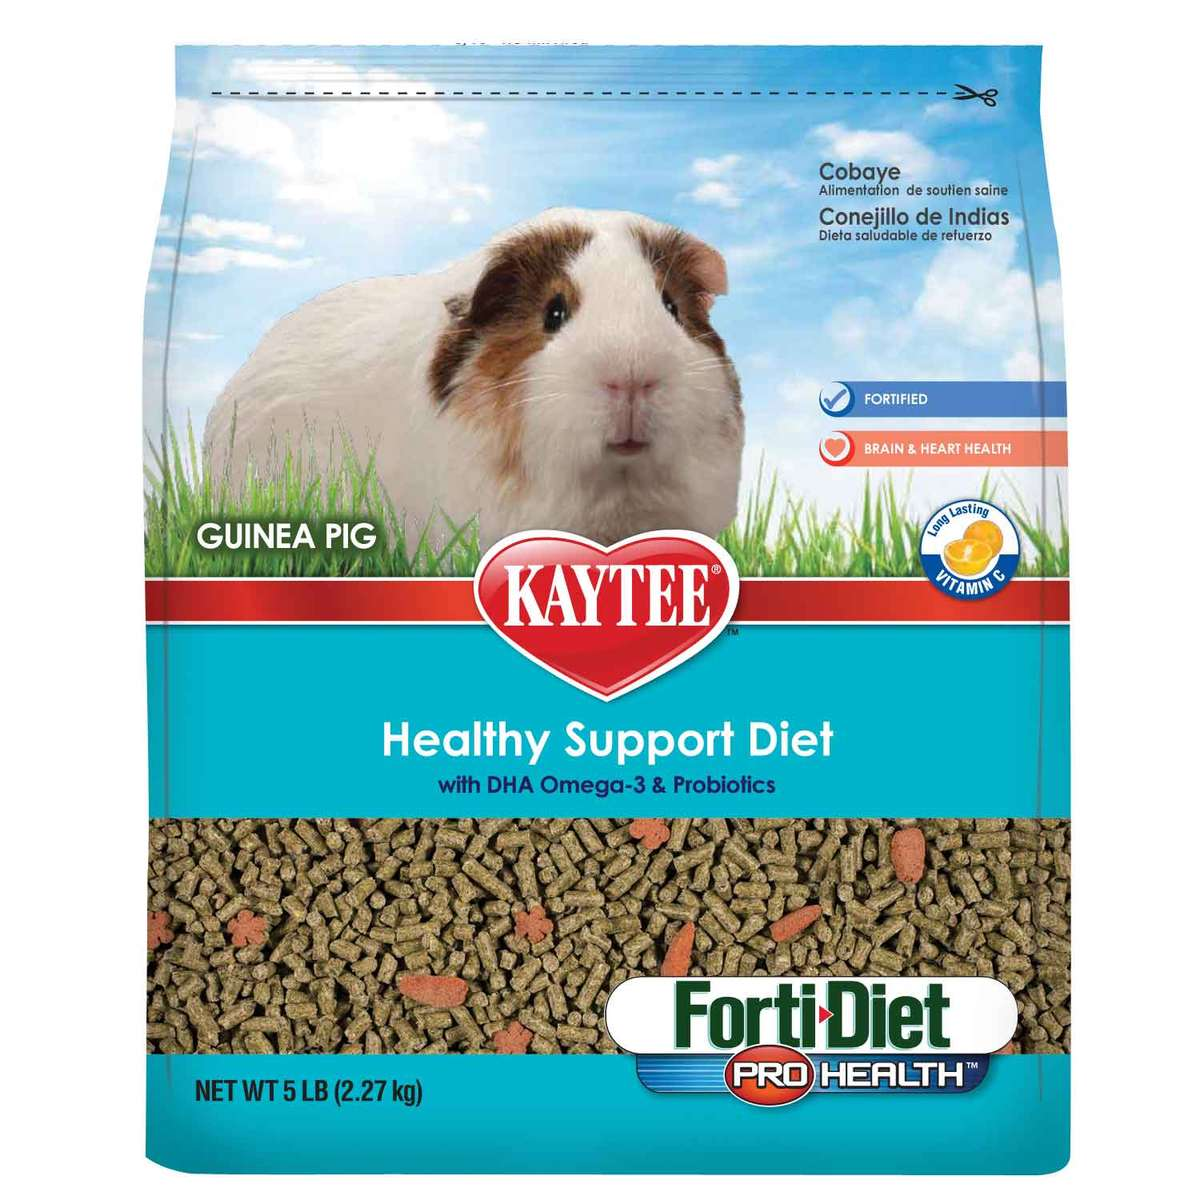 Kaytee Forti Diet Prohealth Guinea Pig 5pd